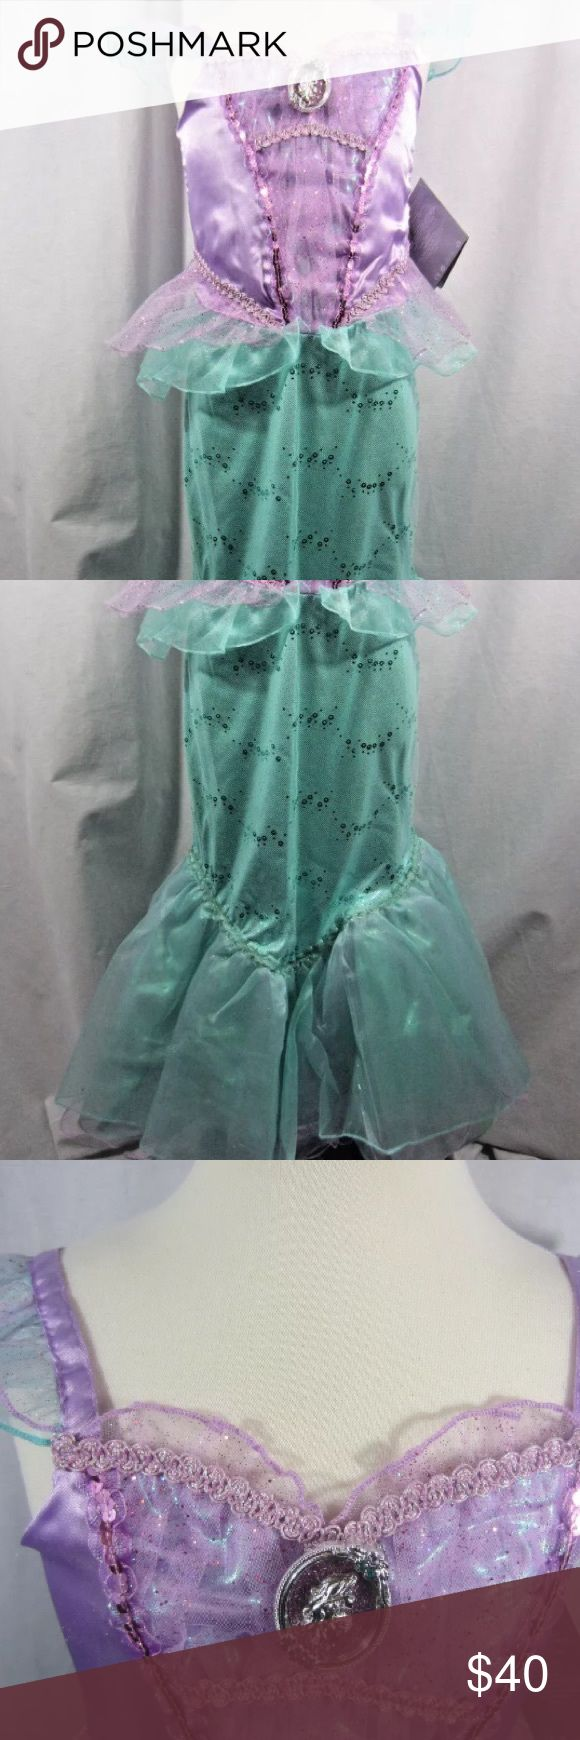 Disney Store The Little Mermaid Ariel Costume 9/10 Disney Store The Little Mermaid Princess Ariel child girls costume.  New with tags and 100% authentic Disney Store Costume. Size 9/10. Size chart is in images. All of my closet is kept in a climate controlled storage unit. Disney Store Costumes Halloween